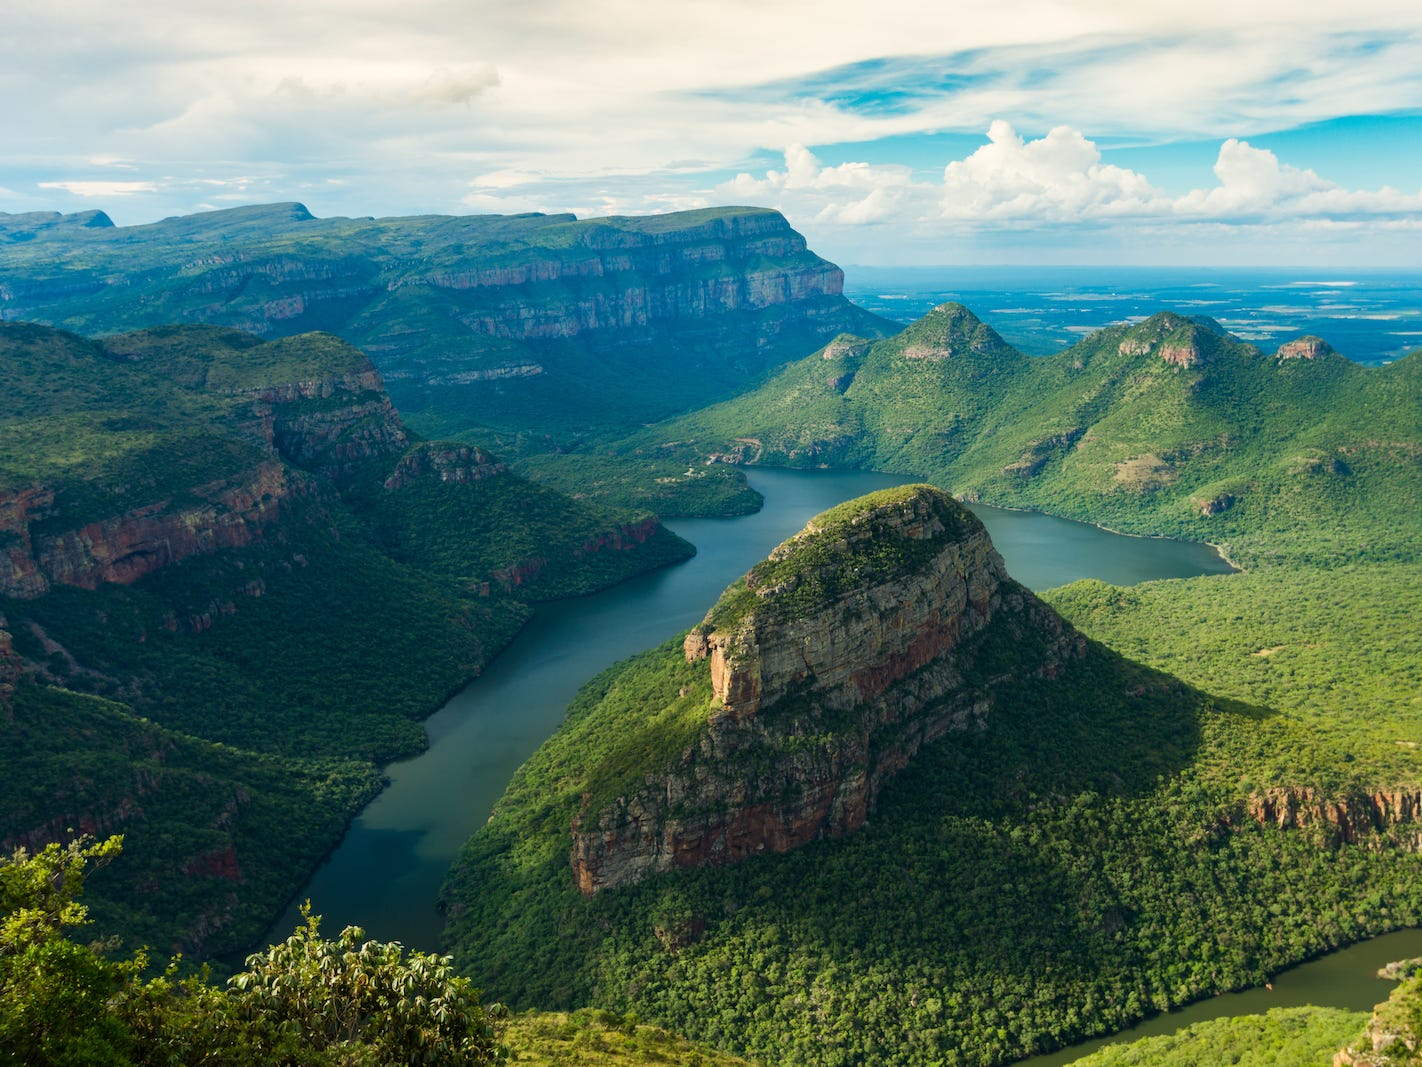 Slide 50 of 51: For gorgeous natural views, go for a hike along the Blyde River Canyon, which sits at an elevation of more than 2,600 feet. This canyon, known for its unique geology — including the Pinnacle, a looming quartzite column — also boasts diverse flora and fauna.